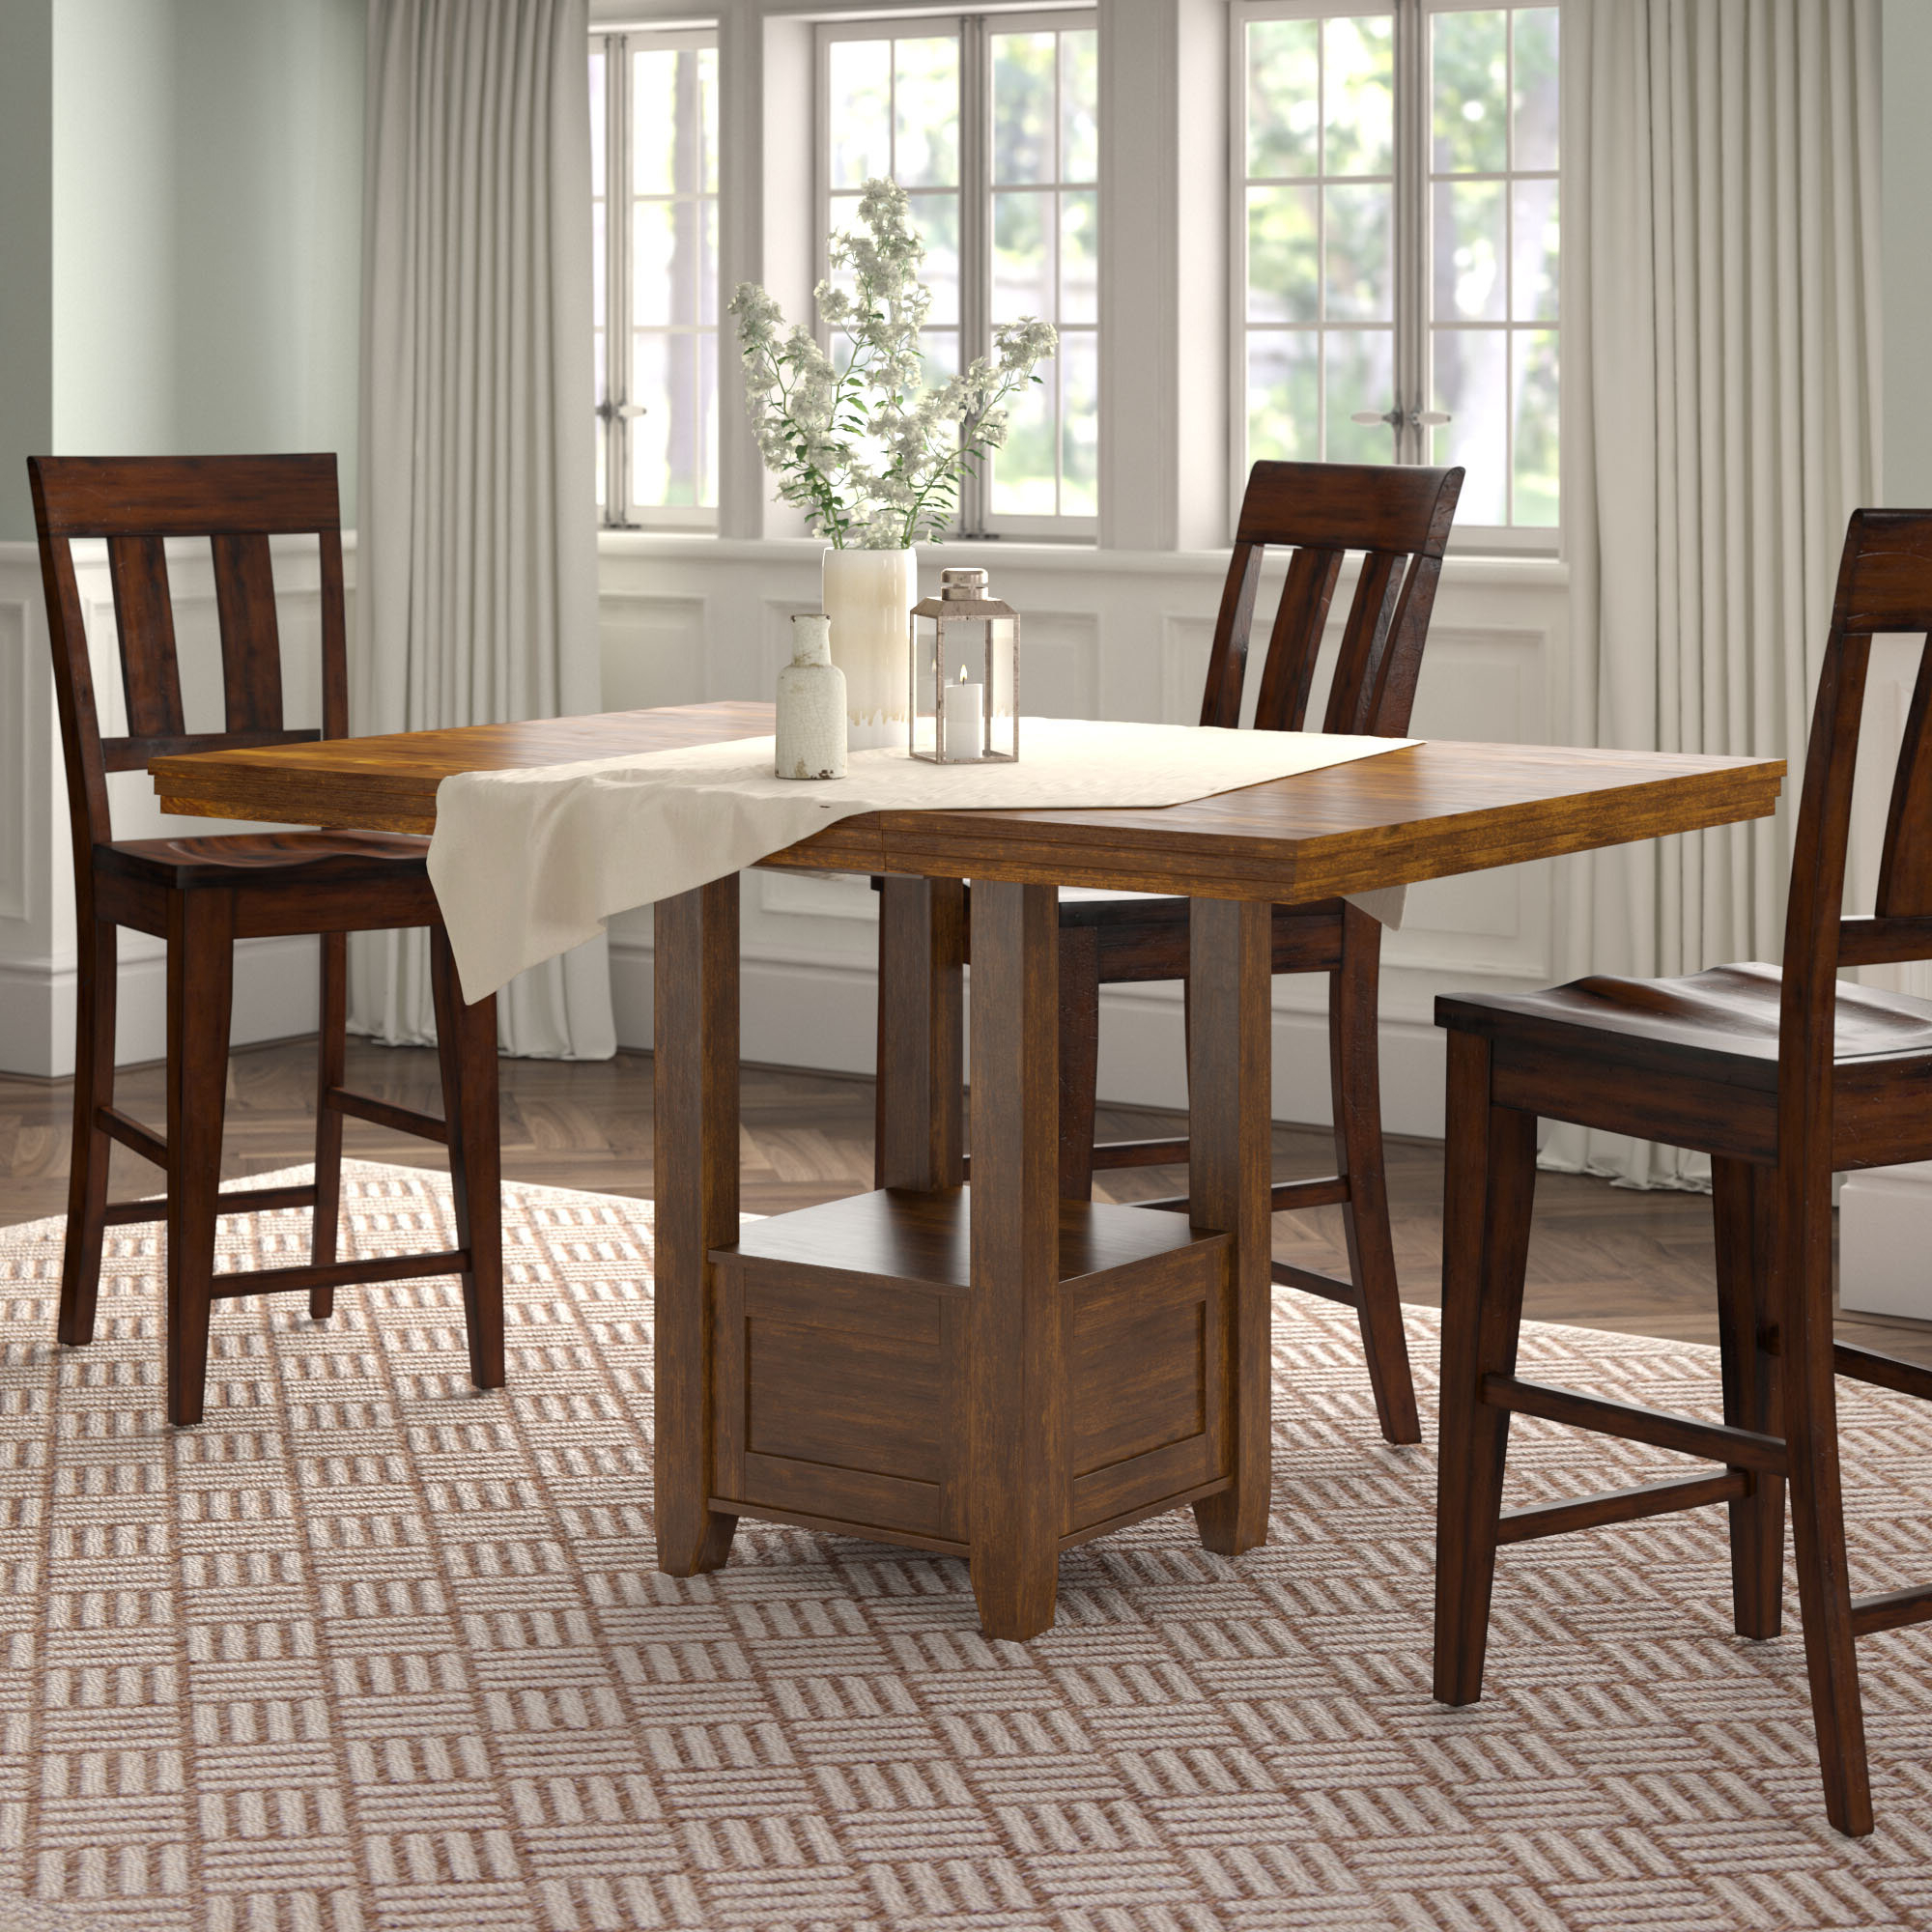 Well Liked Andover Mills Rebecca Counter Height Extendable Dining Table With Transitional 4 Seating Double Drop Leaf Casual Dining Tables (Gallery 20 of 30)